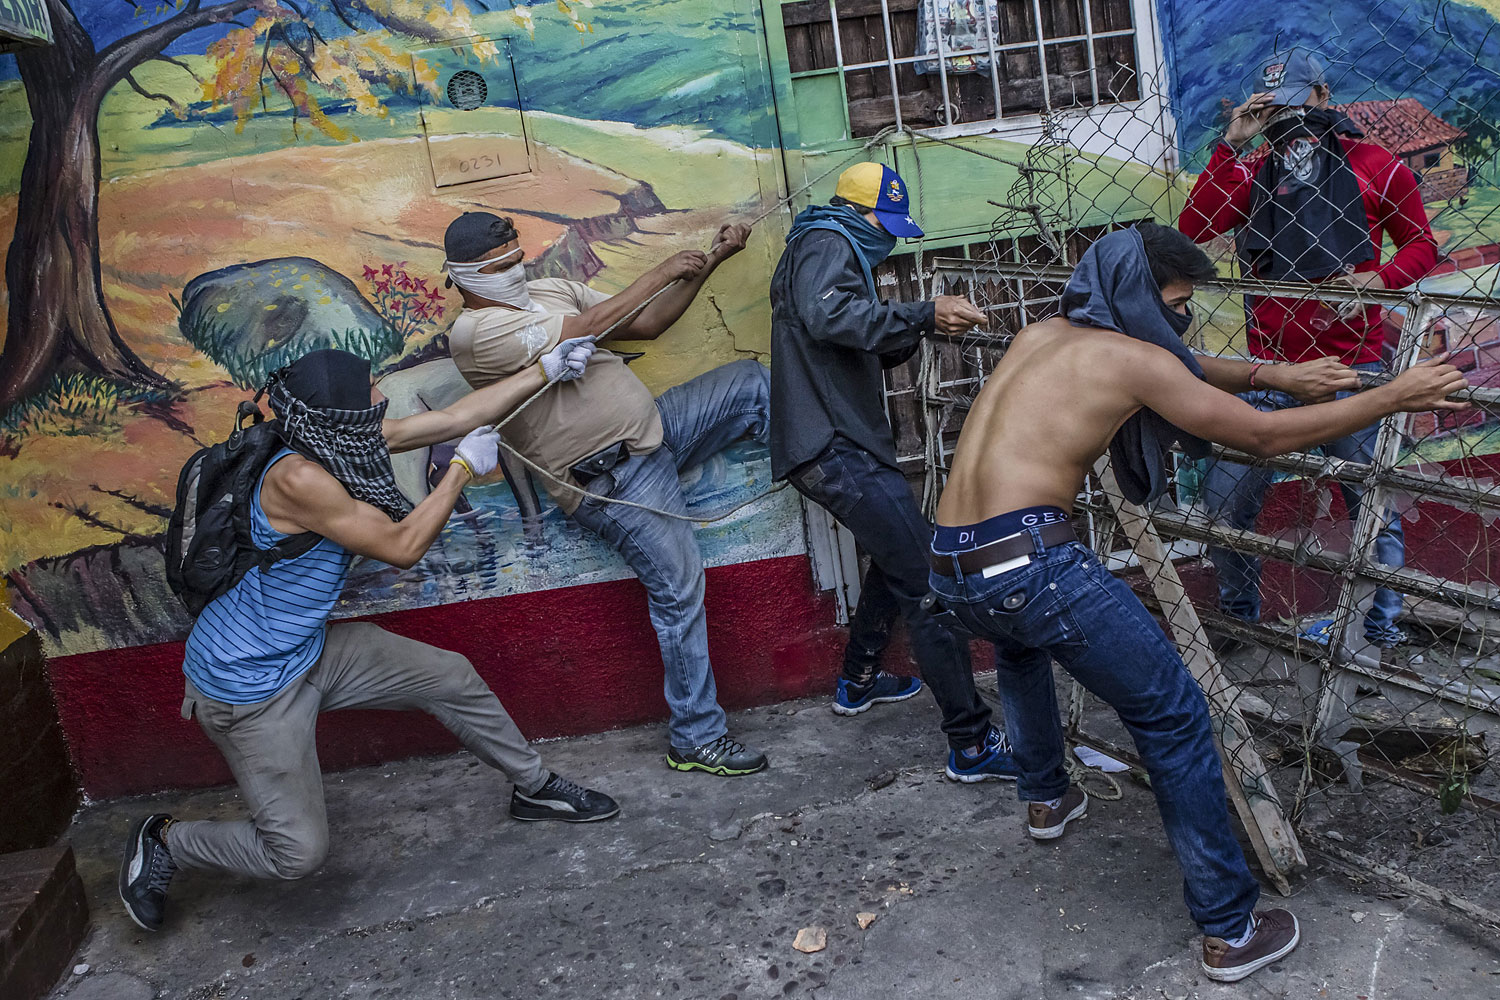 Protesters build a barrier in the Las Pilas area of San Cristobal, Feb. 24, 2014. The capital of Tachira State, bordering Colombia, is the site of the some of the fiercest protests against the government of President Nicolas Maduro.